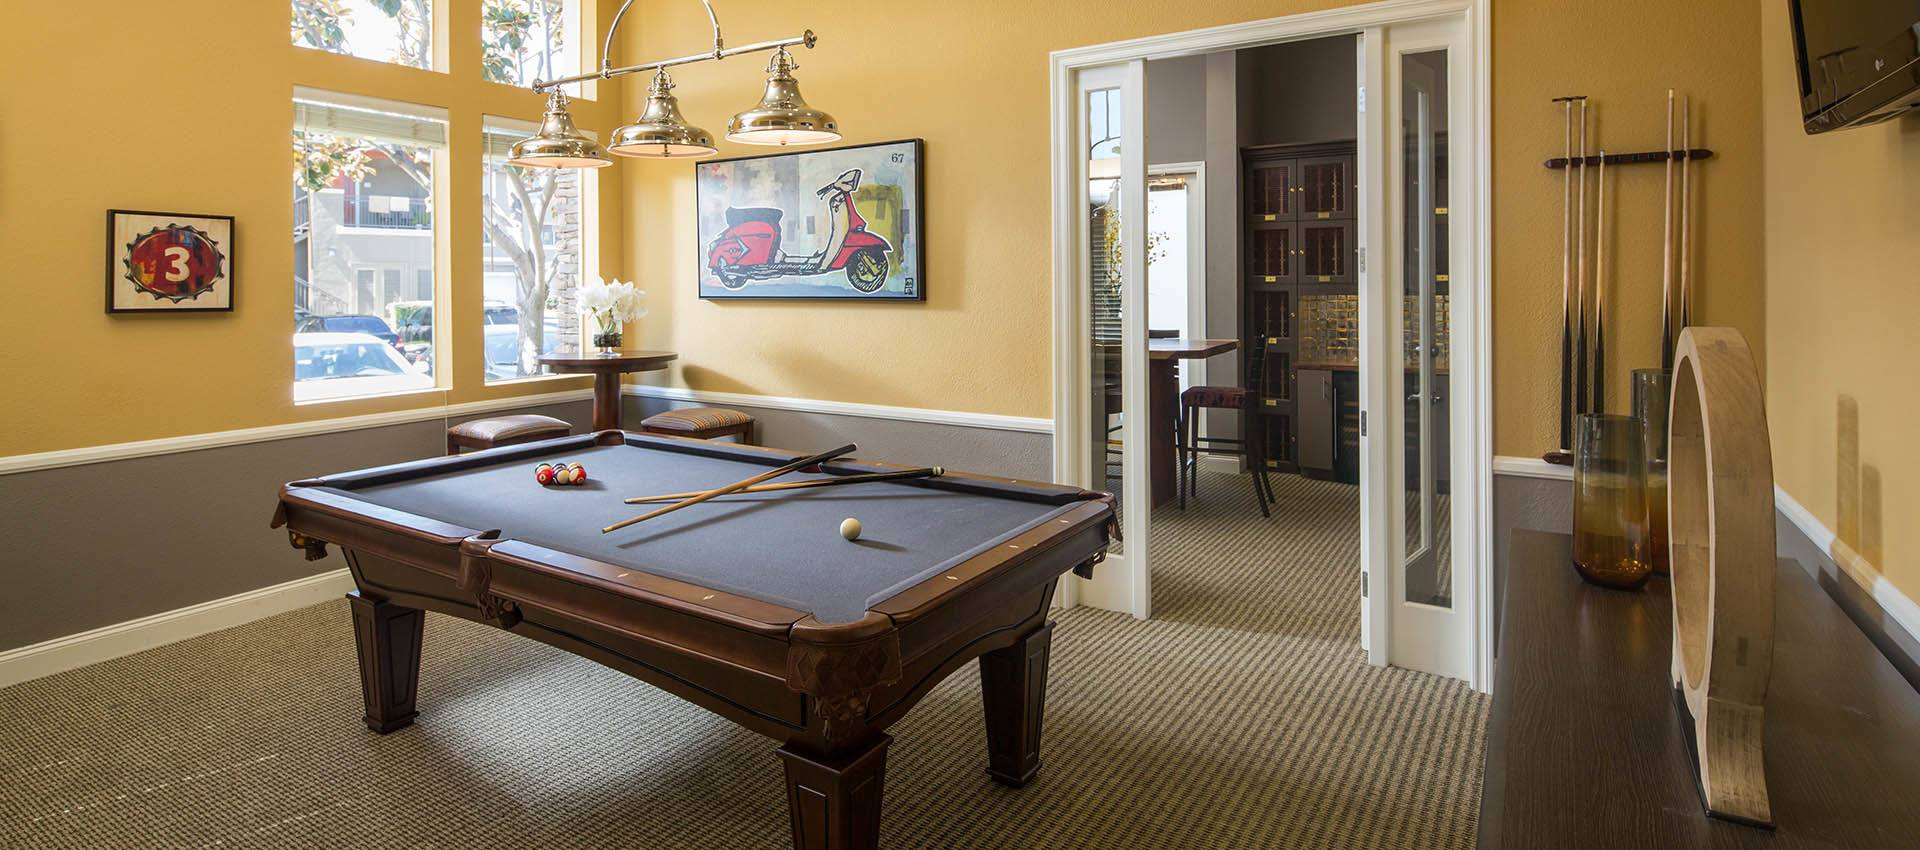 Billiards Amenities Gallery